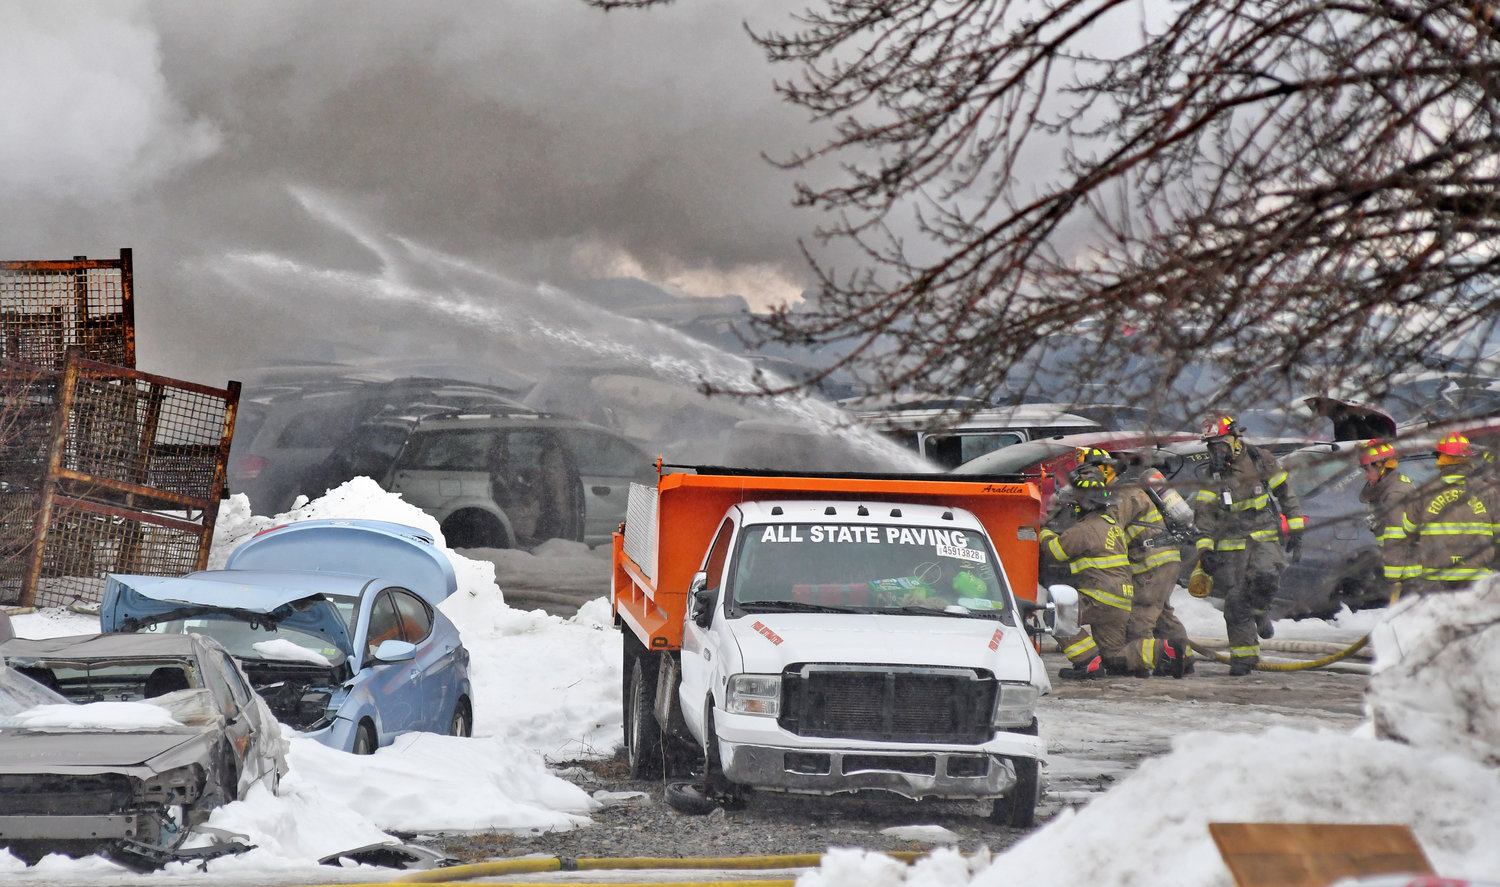 Tolpa's Auto Parts -With Forestport firemen dousing the flames and smoke Wednesday afternoon off French Road in Steuben.